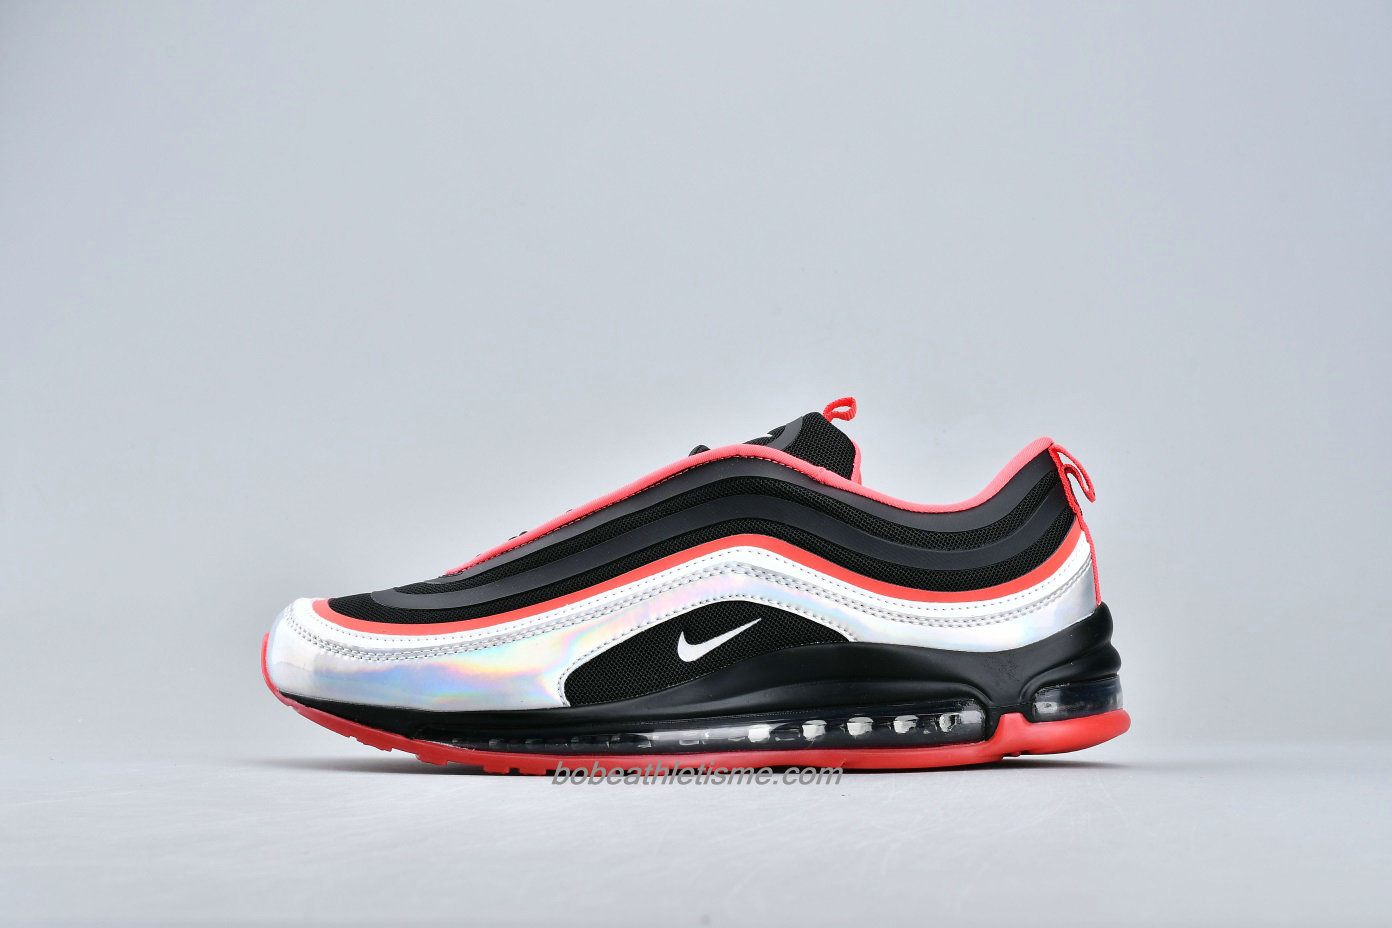 Chaussures Nike Air Max 97 UL 17 SE BV6670 013 Noir / Rouge / Argent